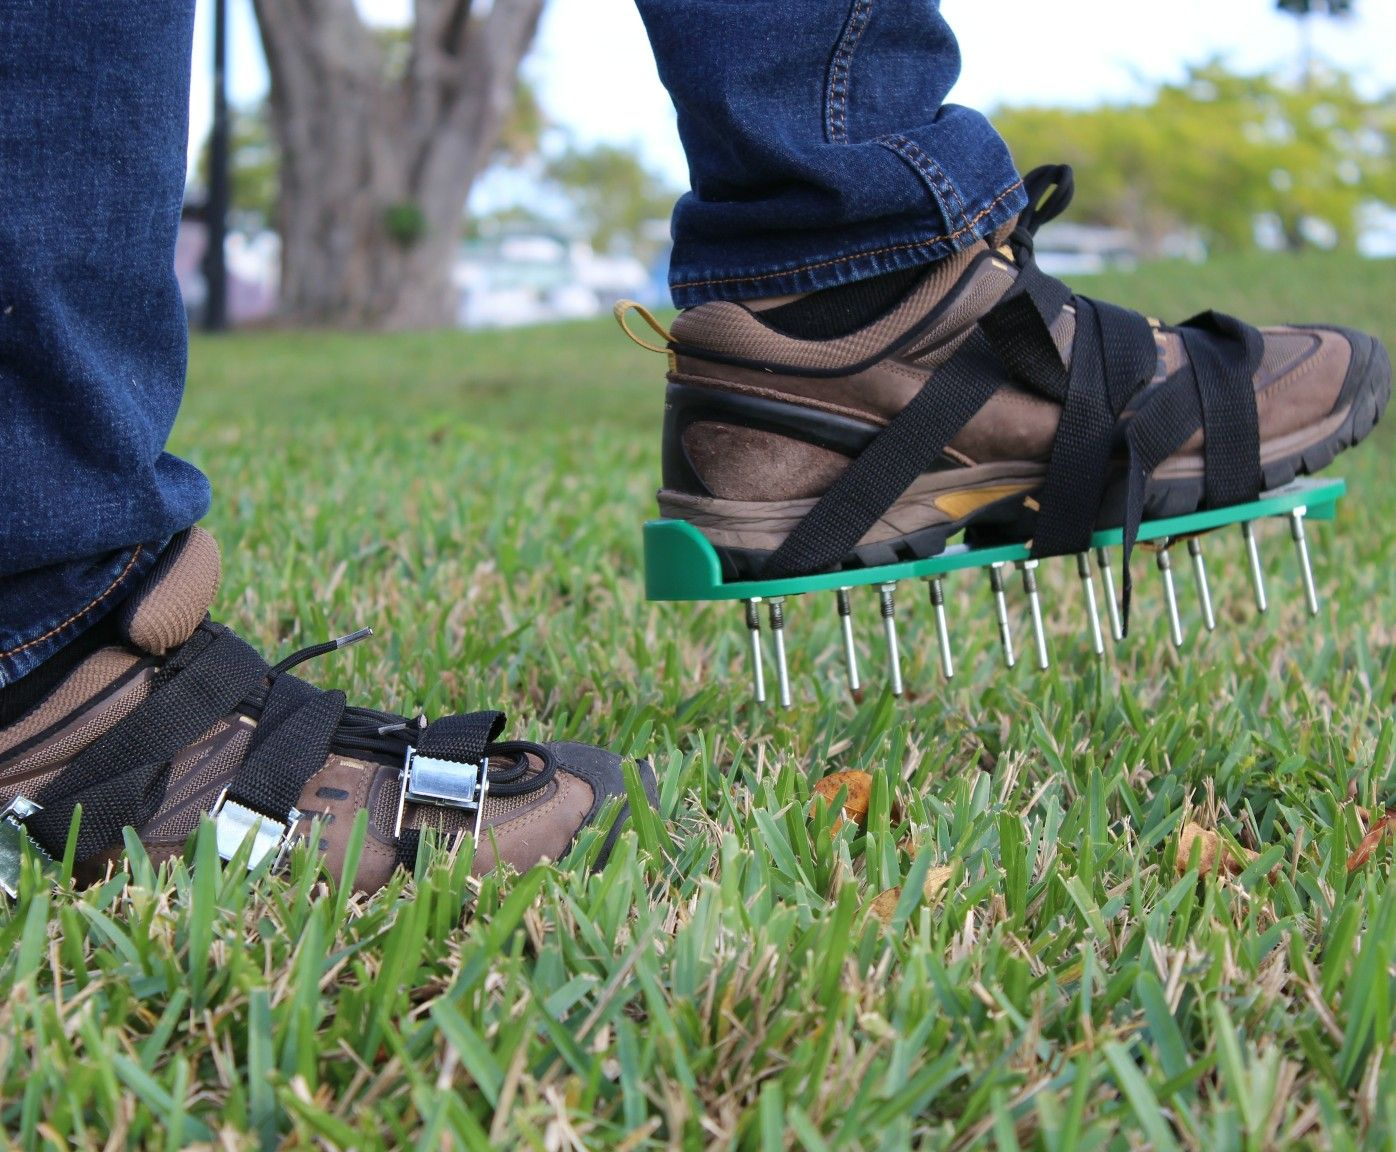 20 Metal Spikes Plus 3 Straps Will Allow You To Aerate Your Lawn And Get A Healthier Grass Aerate Lawn Aerator Healthy Grass